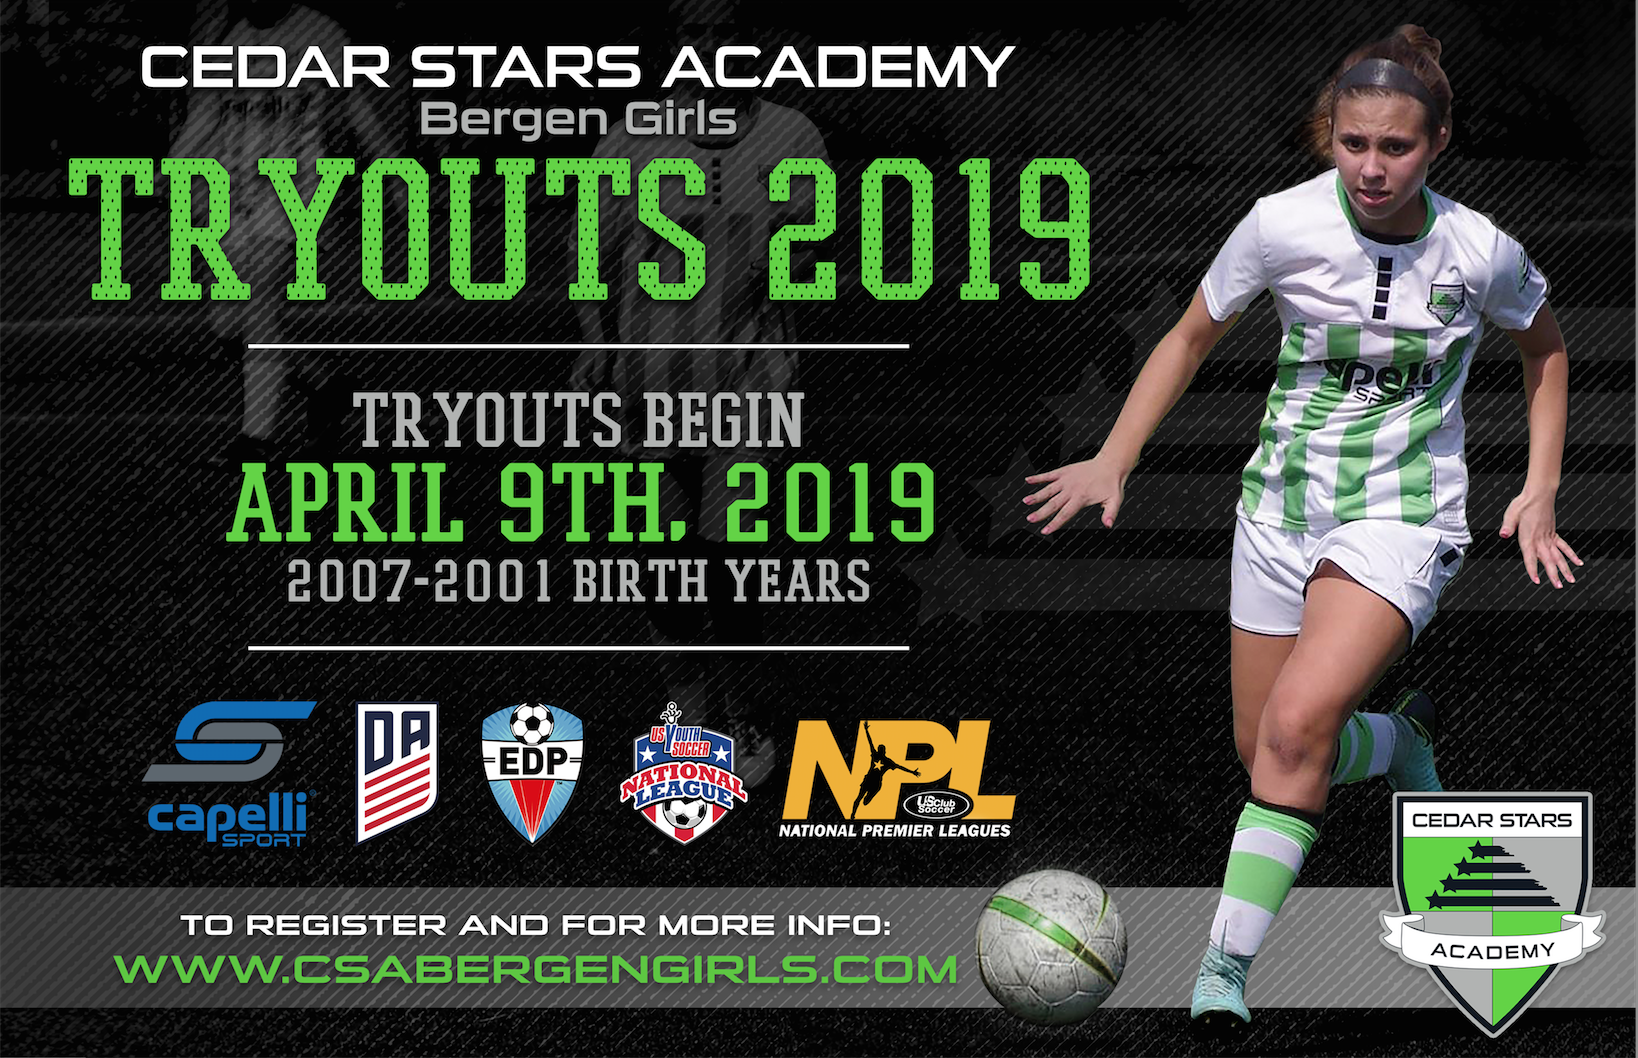 2007 - 2001 Tryouts (Fall 2019)